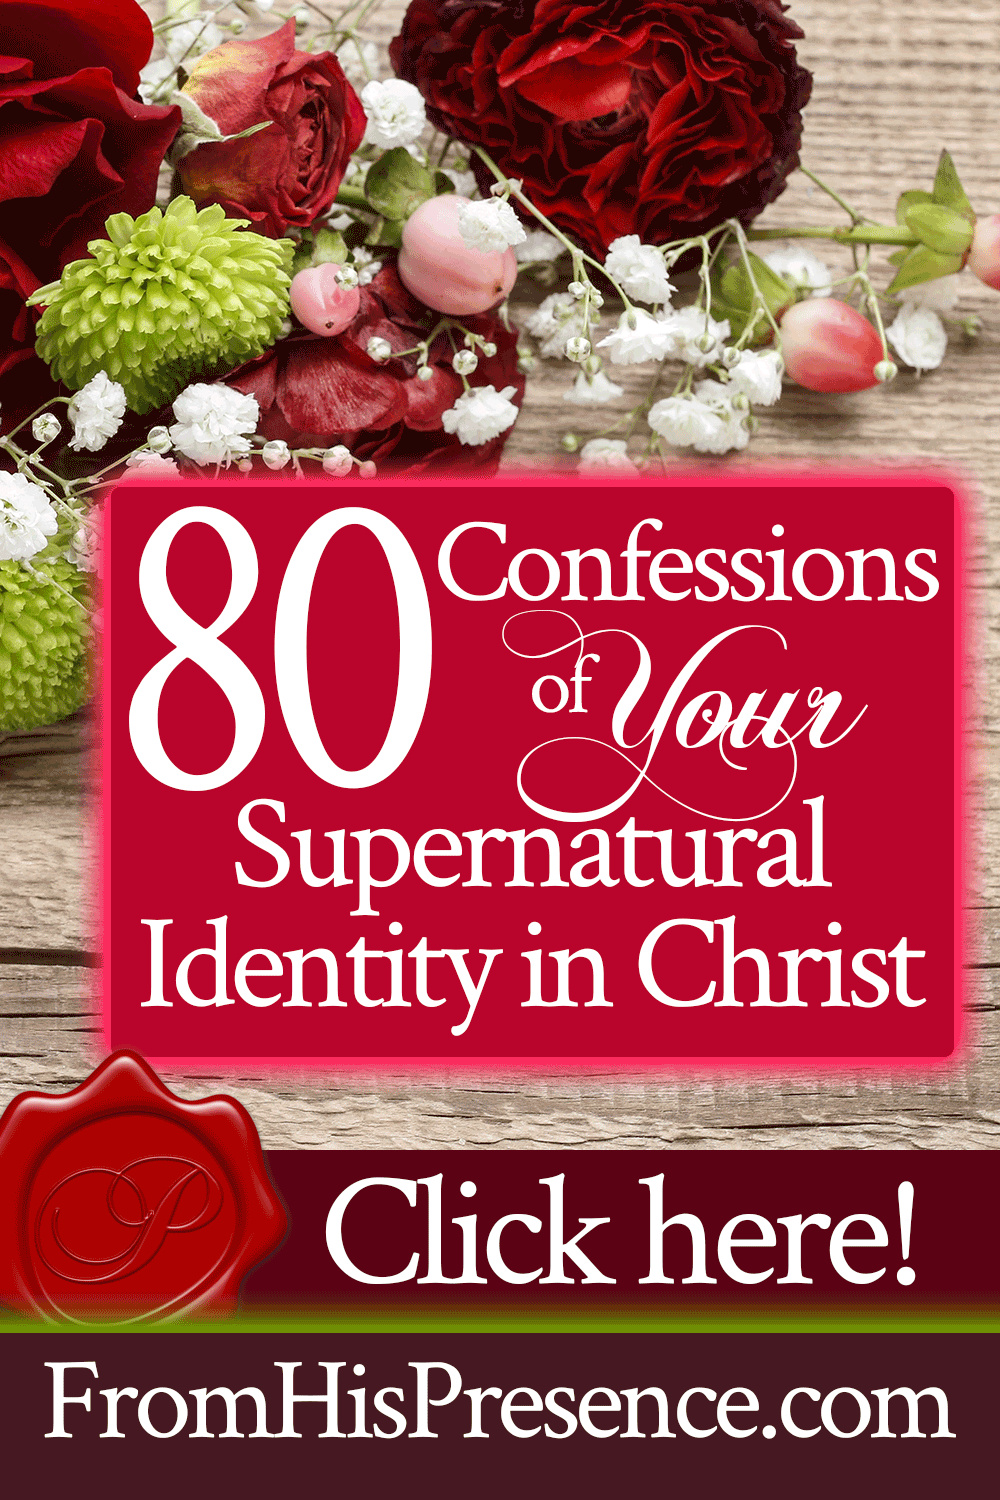 80 Confessions of Your Supernatural Identity in Christ | Speak these Biblical confessions to understand your identity in Christ! | by Jamie Rohrbaugh | FromHisPresence.com